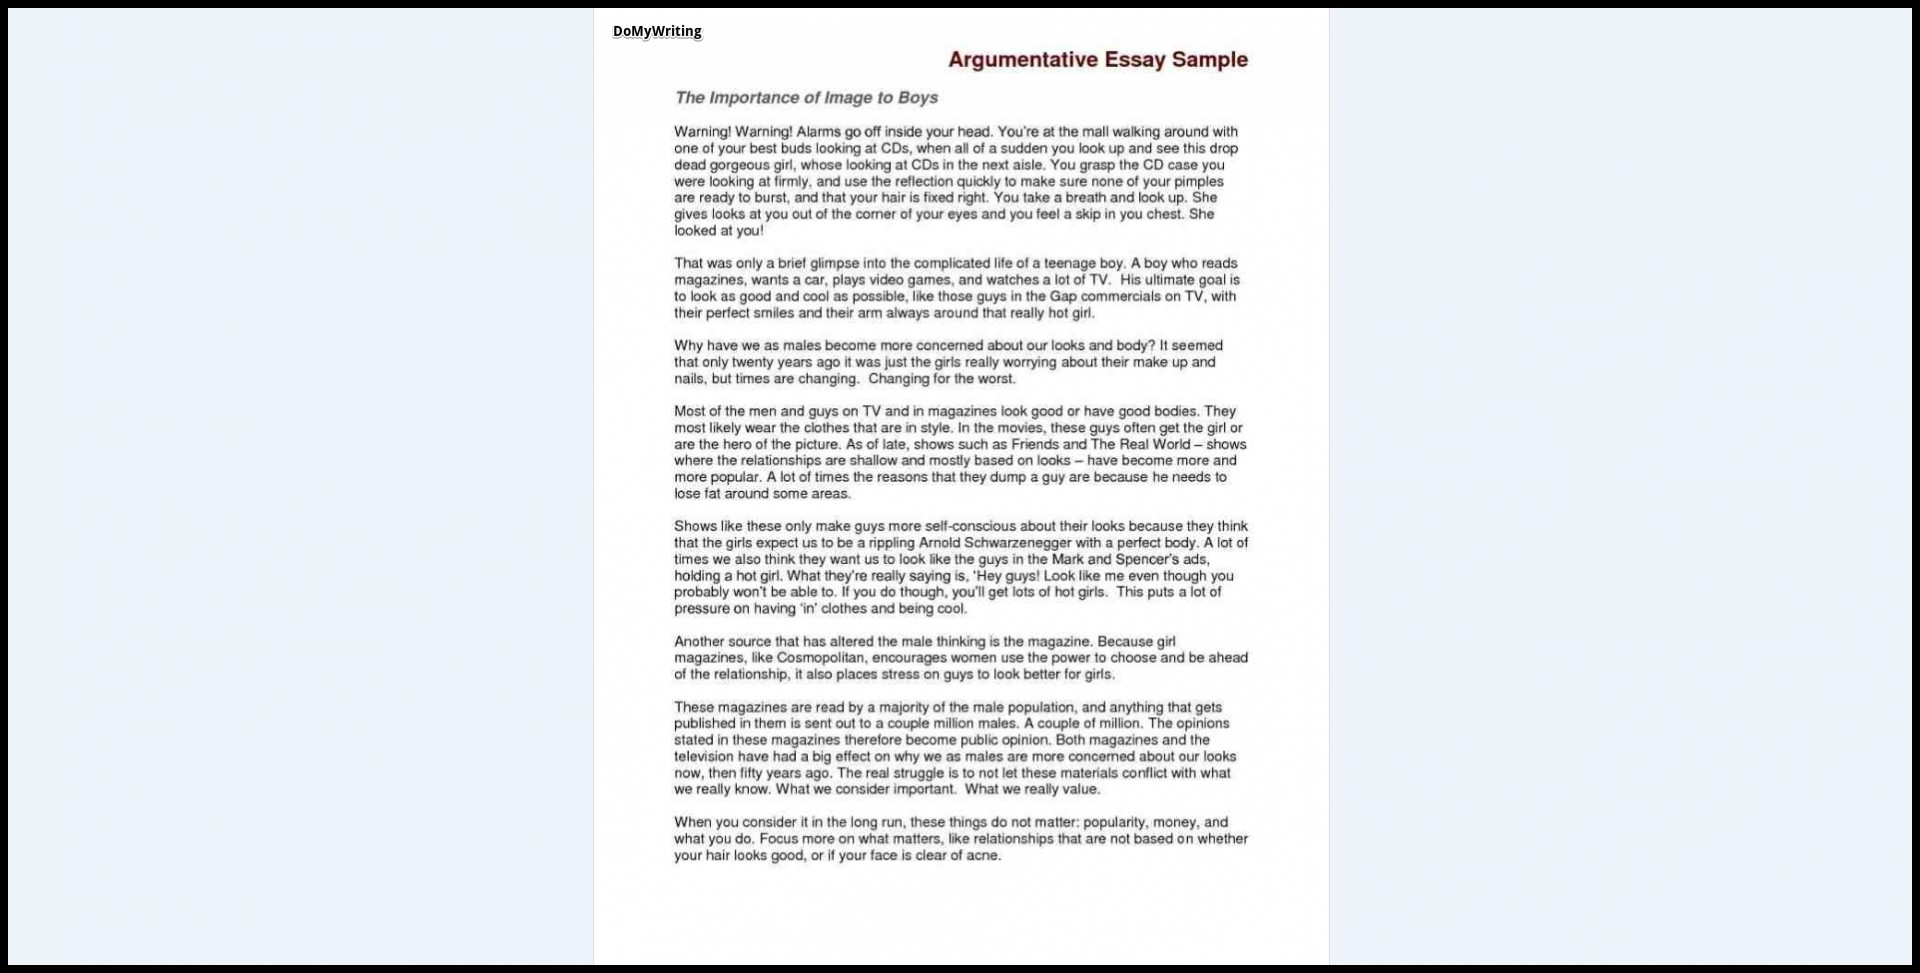 009 Argument Essay Ideas Argumentative Sample Singular Prompts For College Students With Articles High School 1920